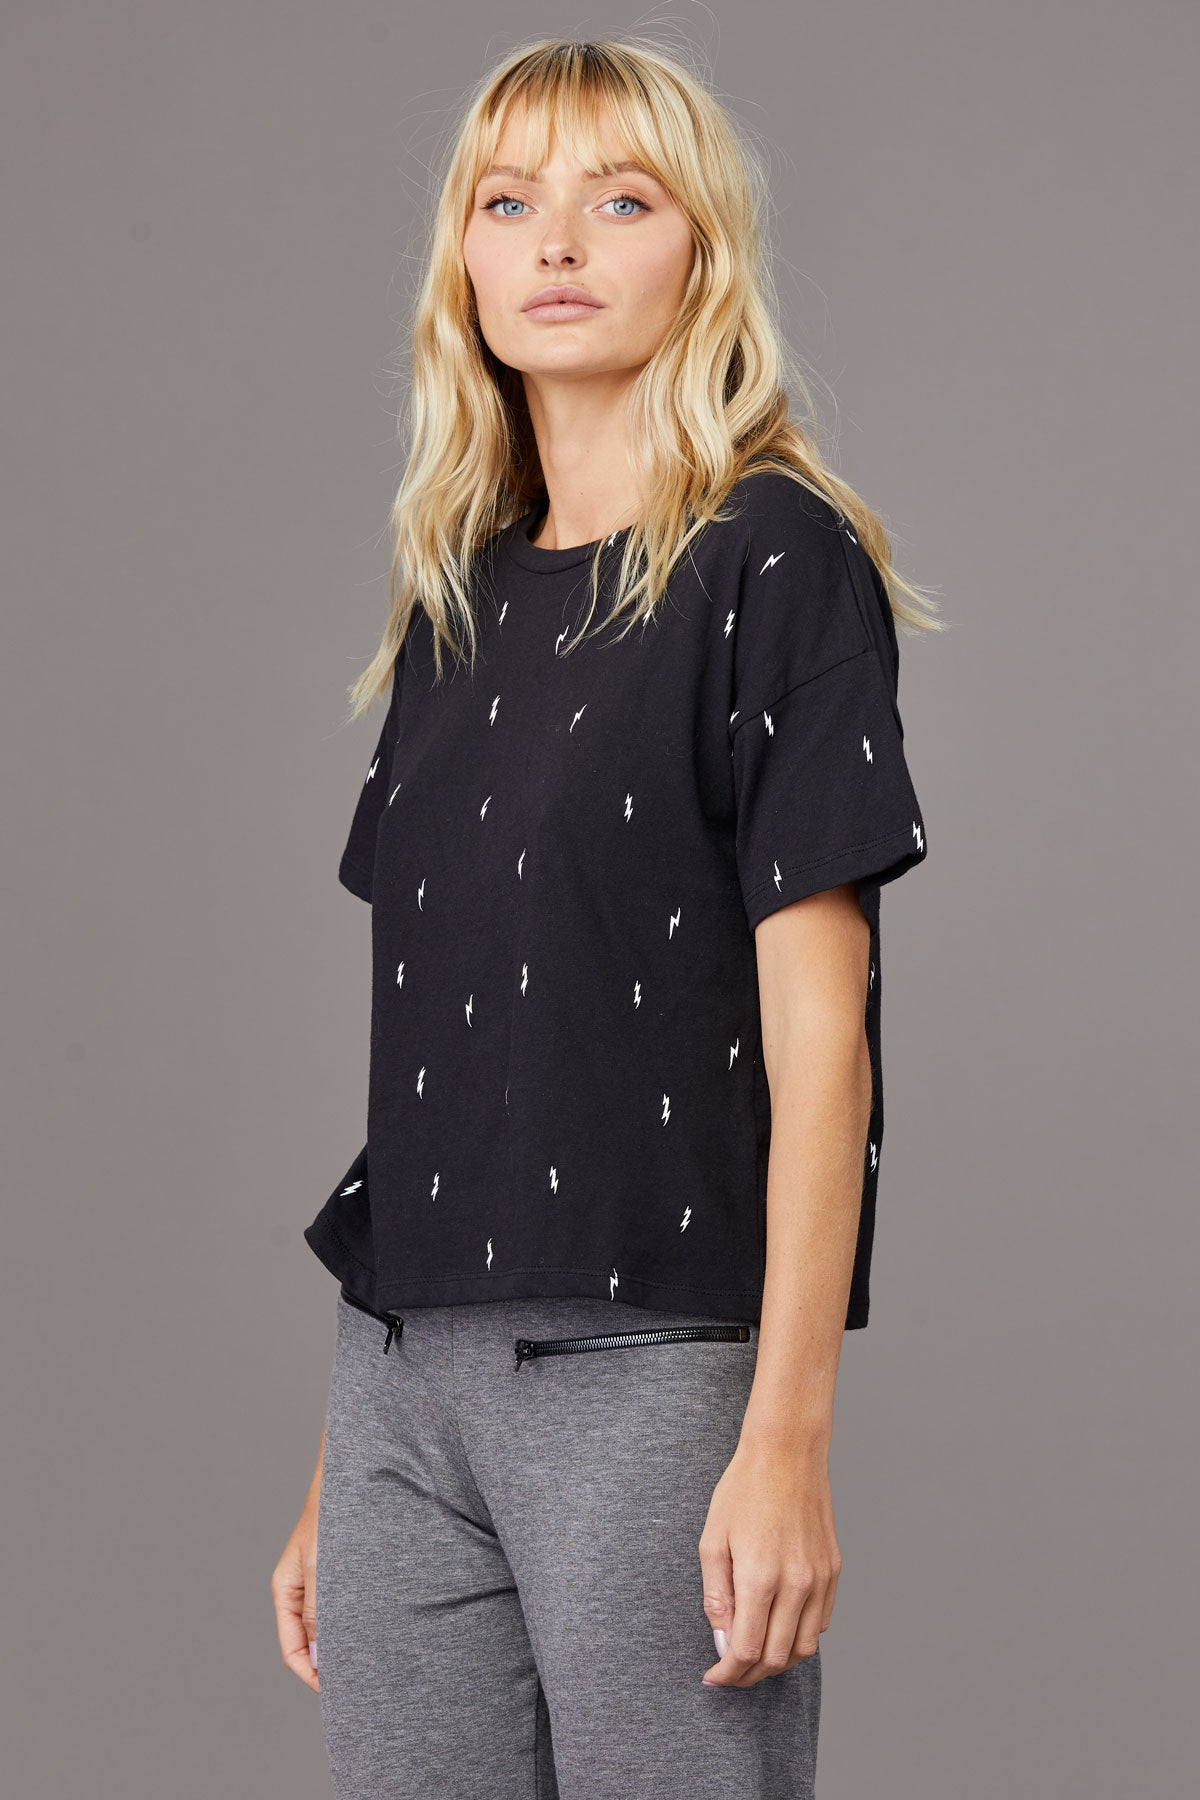 LNA Lightning Storm Boxy Crew in Lightning Bolt Print